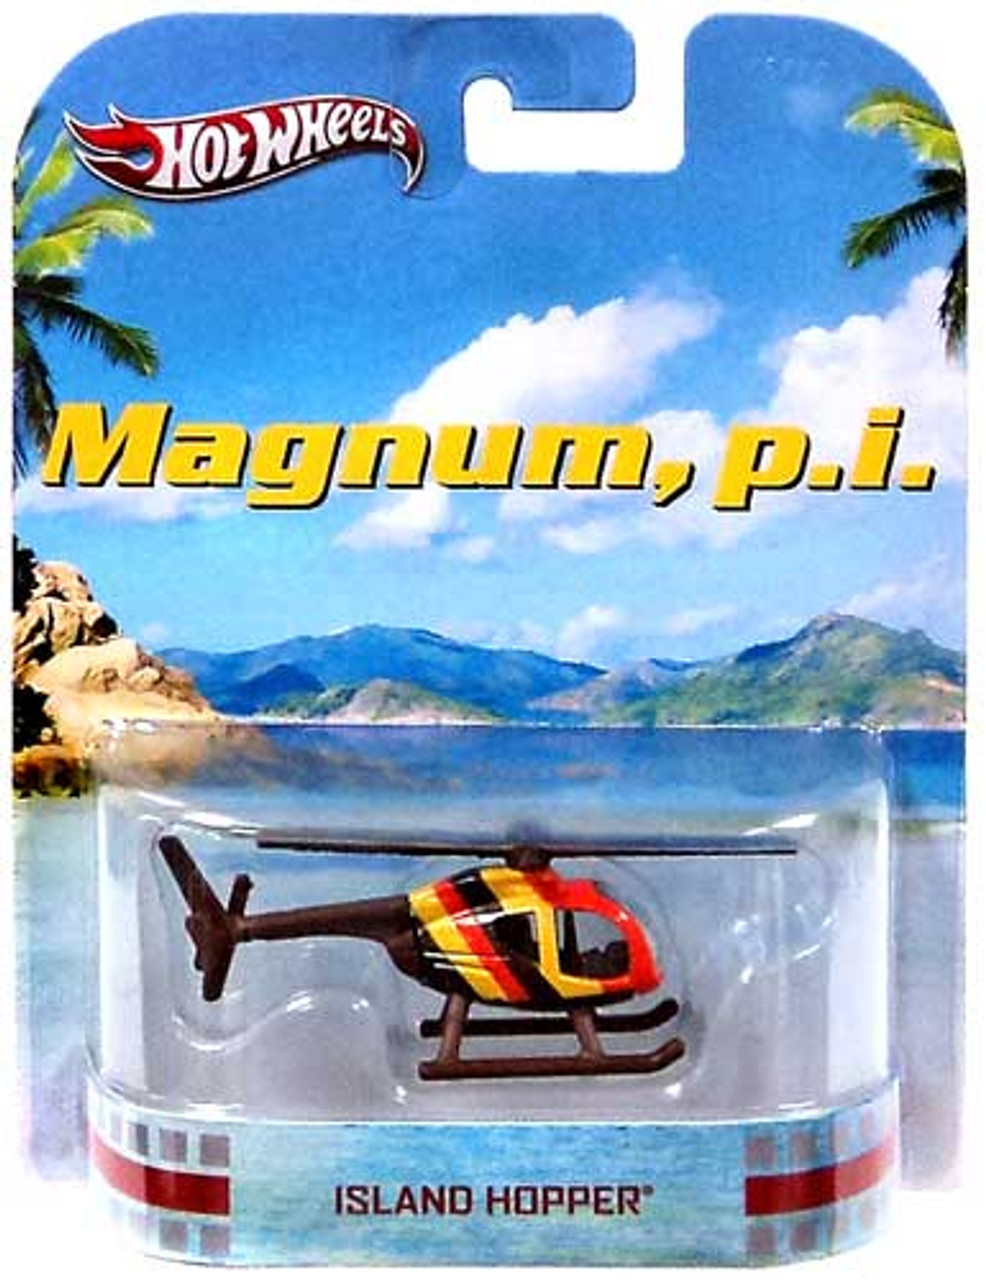 Magnum, P.I. Hot Wheels Retro Island Hopper Diecast Vehicle